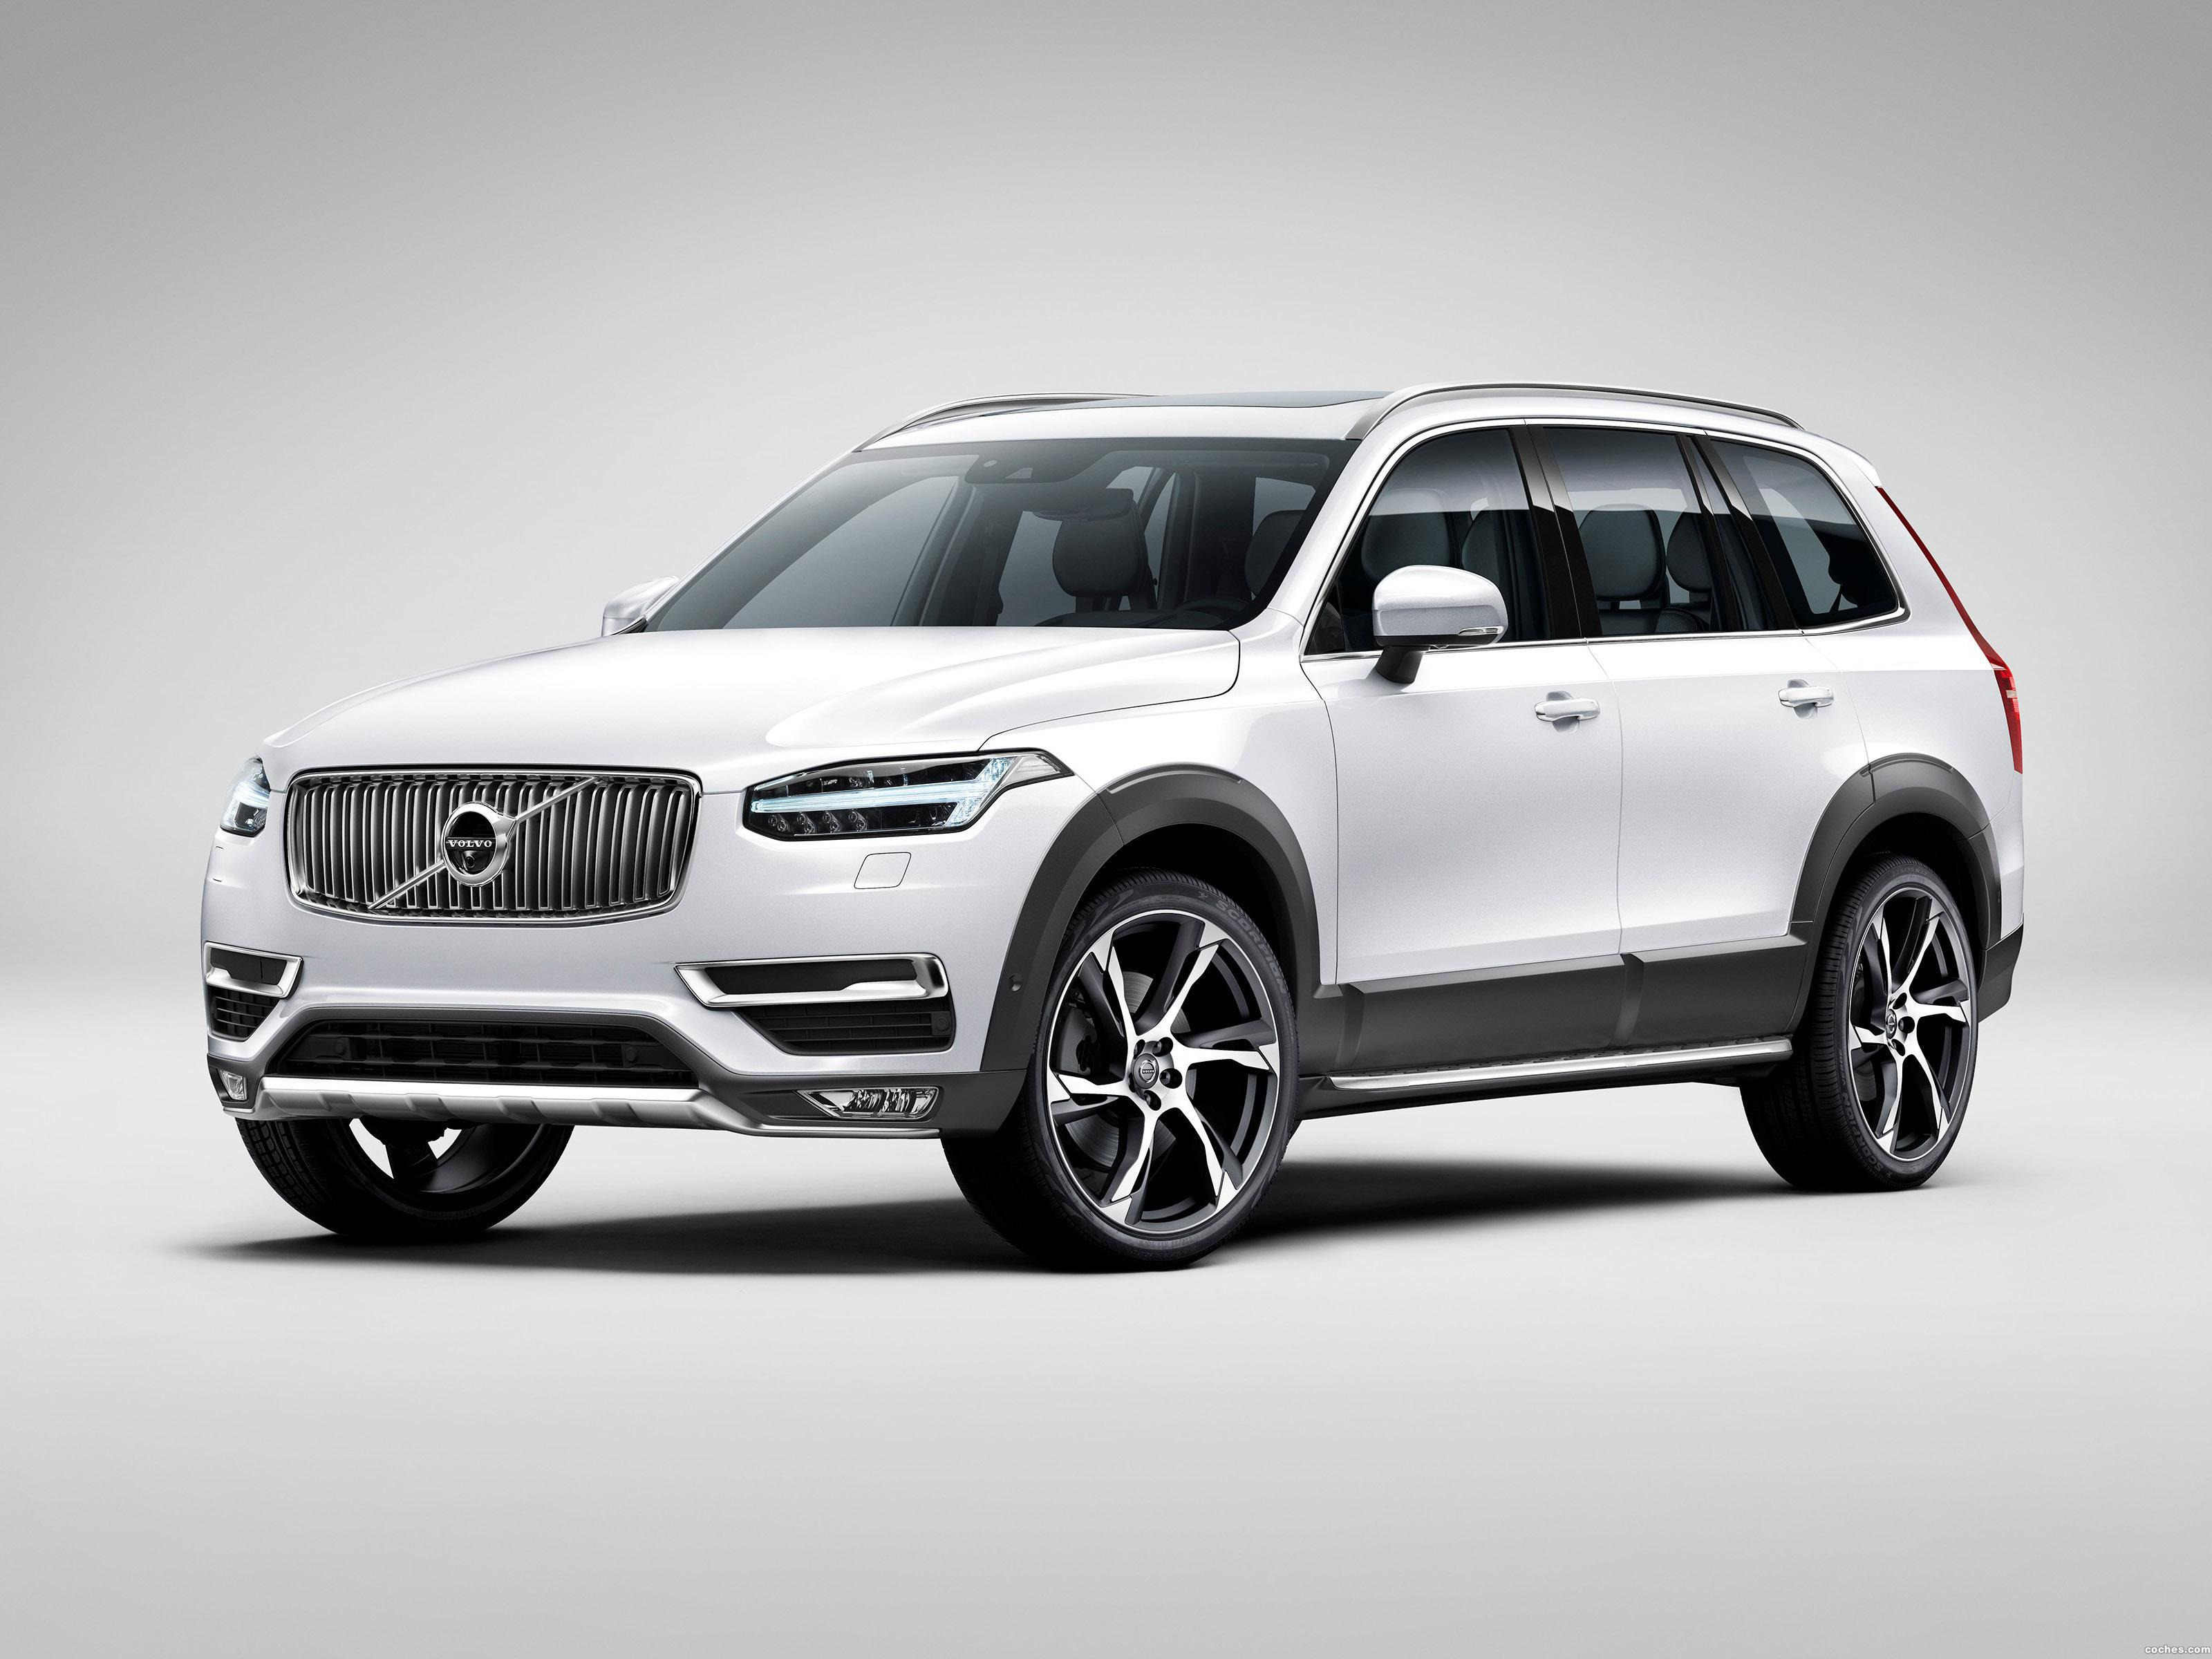 Foto 0 de Volvo XC90 T6 AWD Rugged Luxury 2015